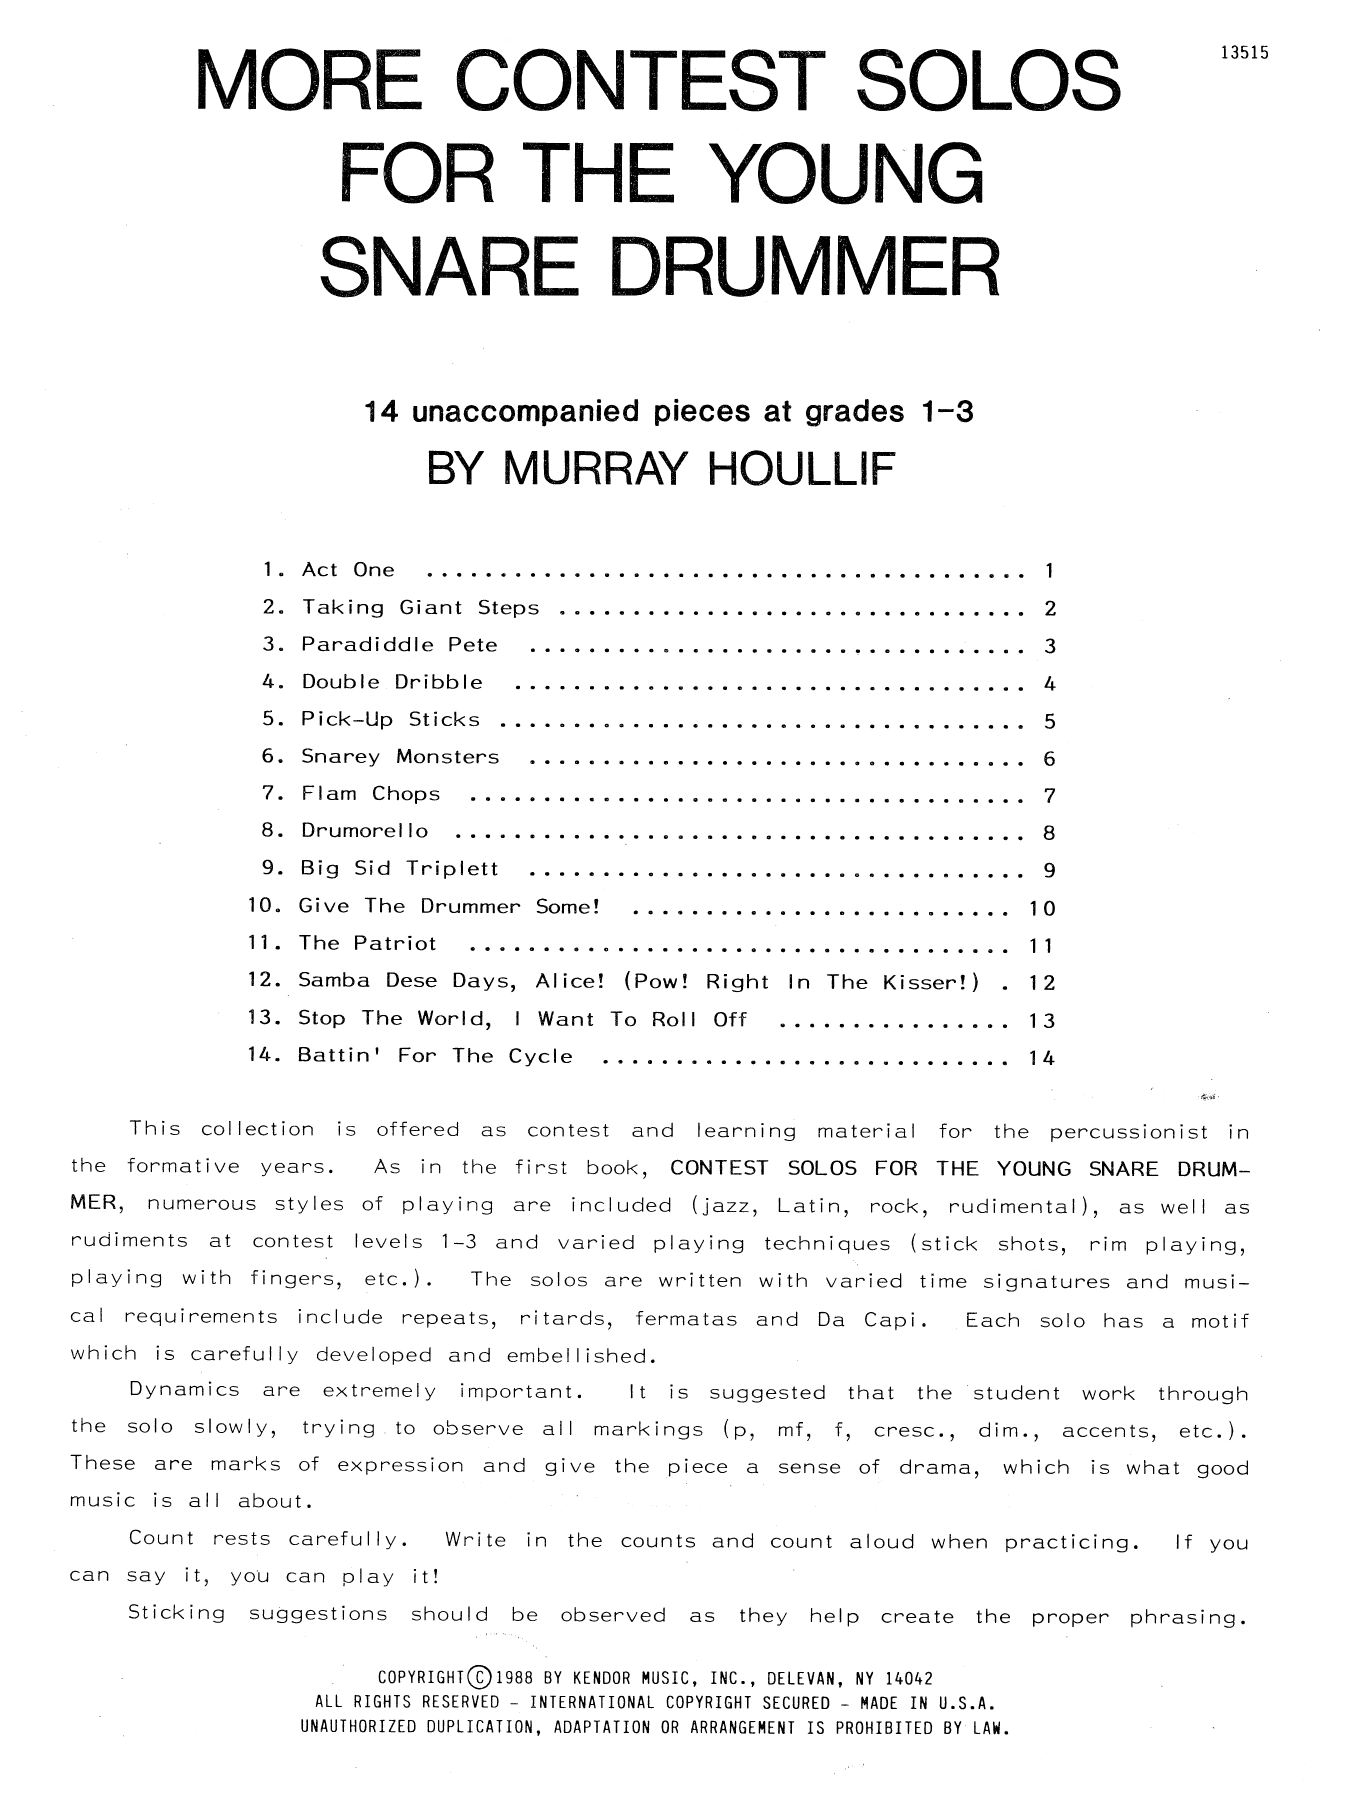 More Contest Solos For The Young Snare Drummer Sheet Music